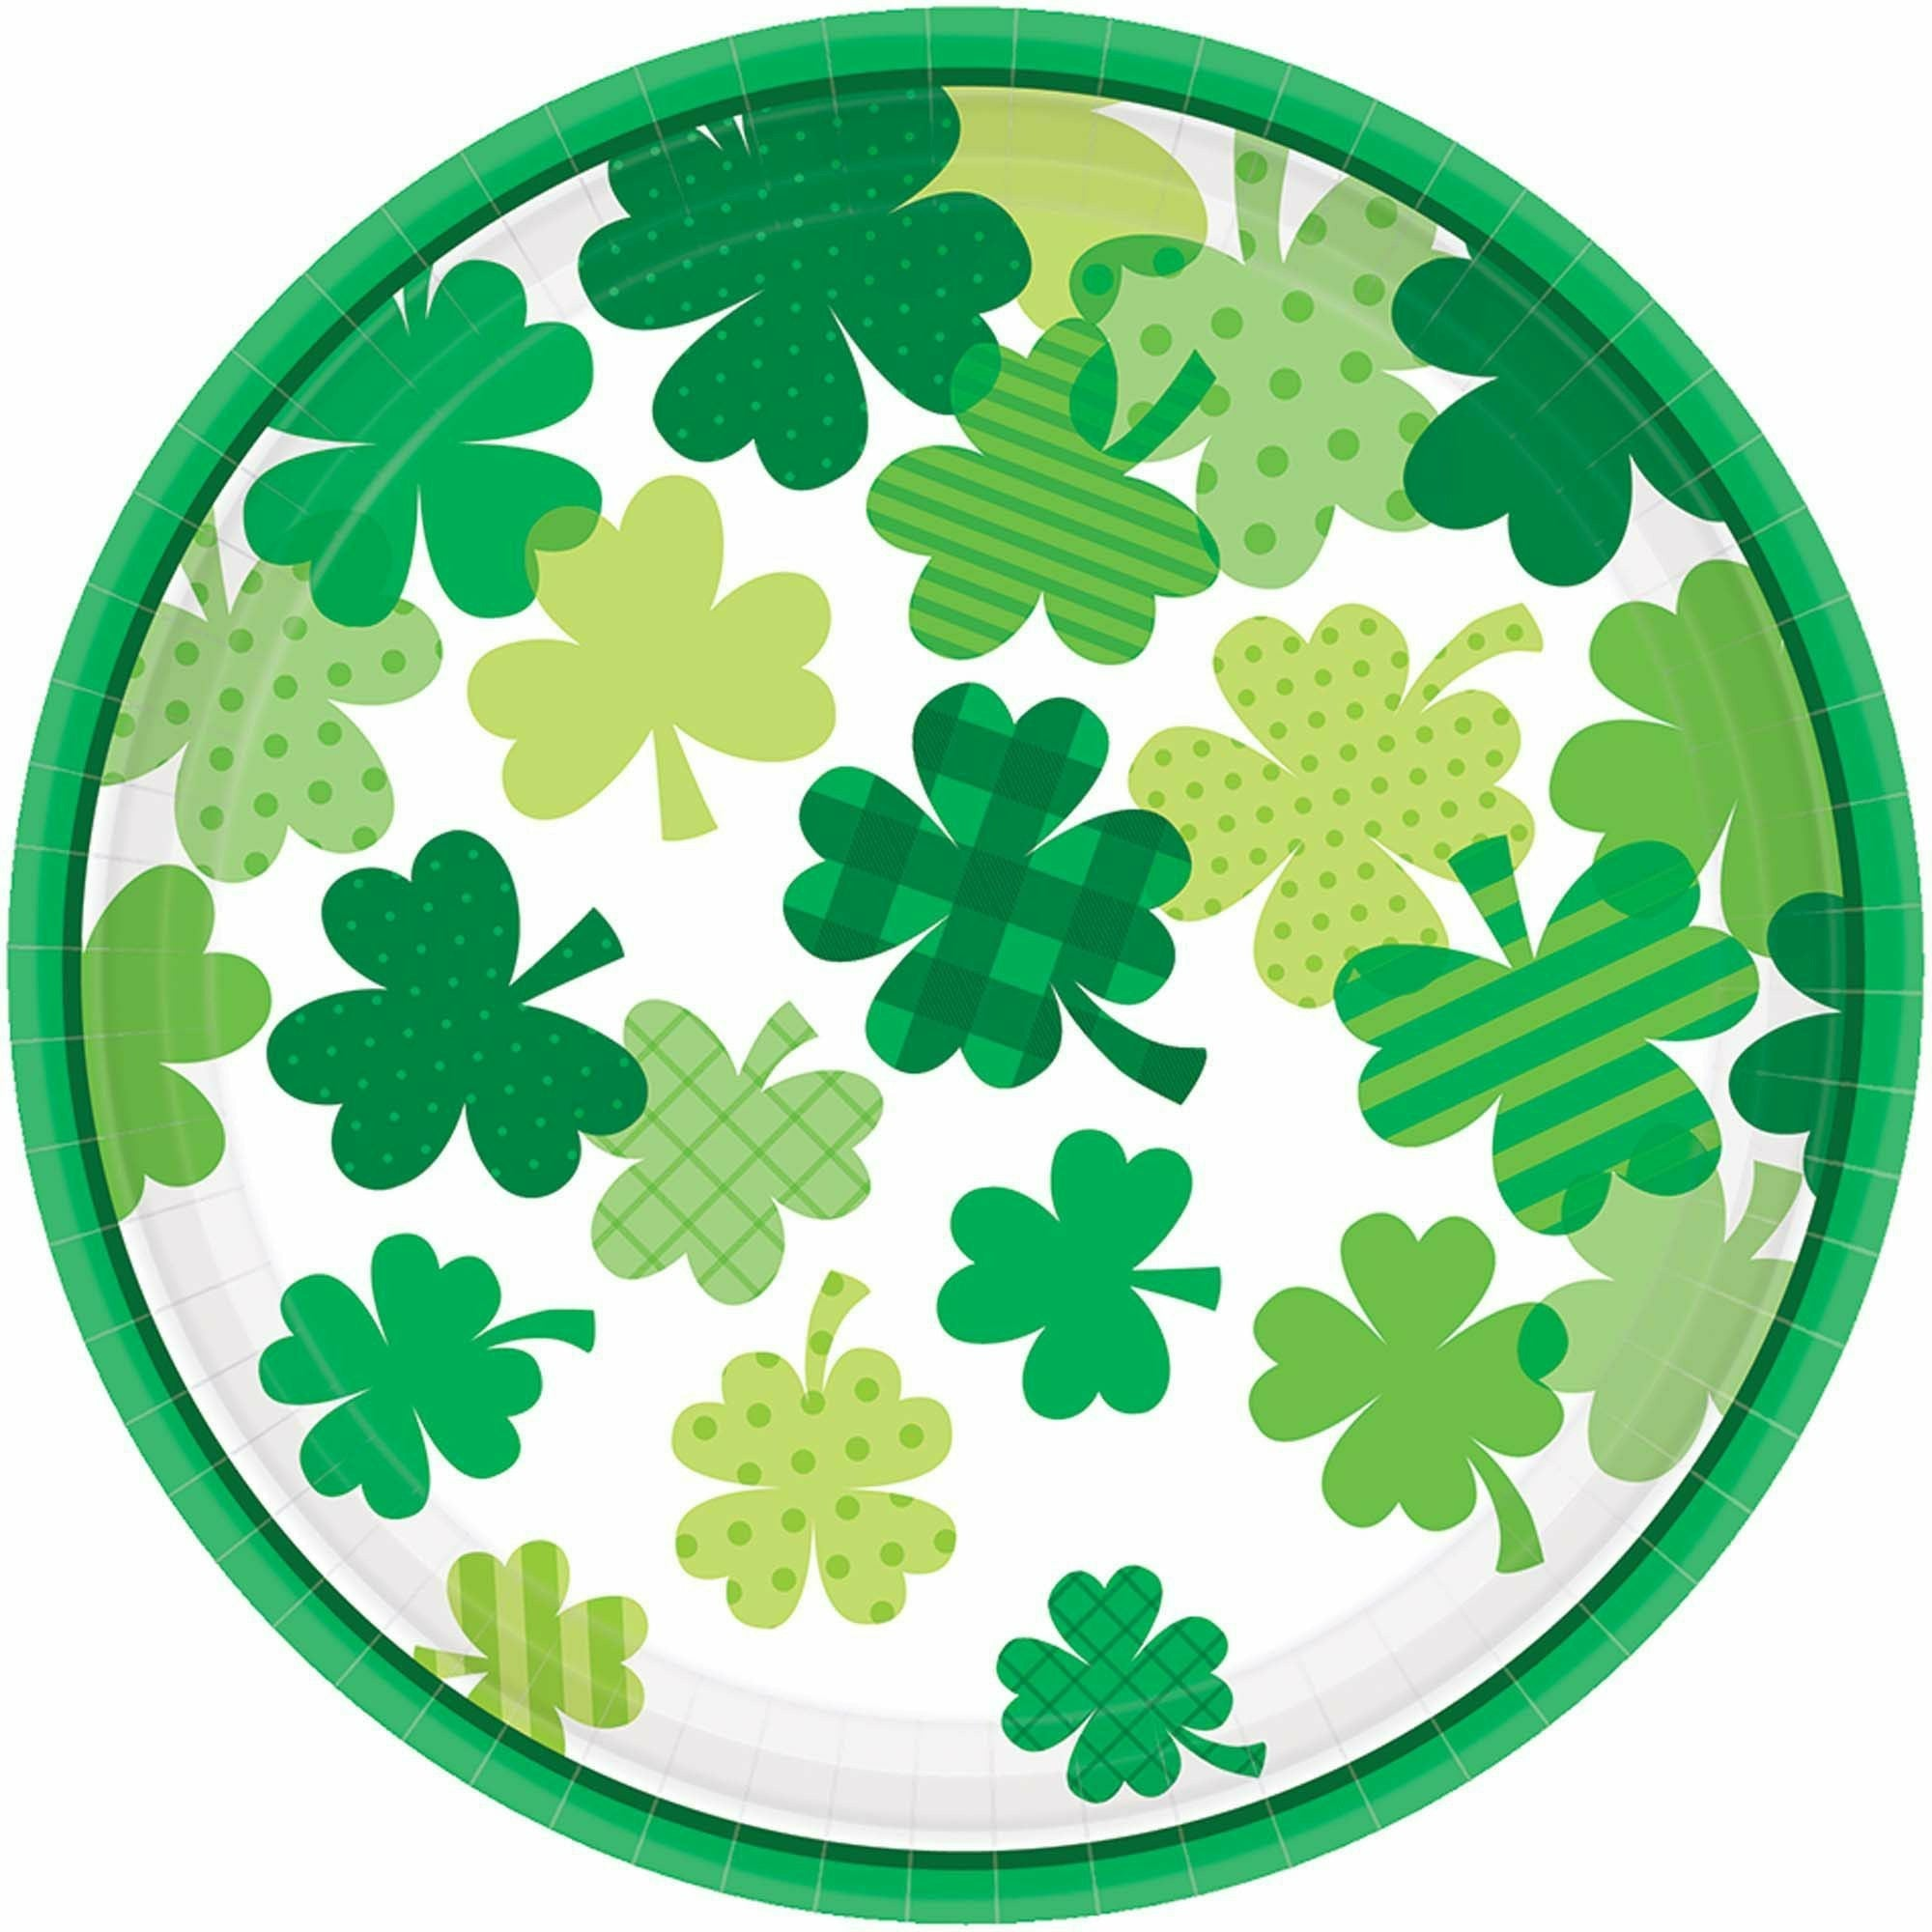 Blooming Shamrocks Round Plate 7""